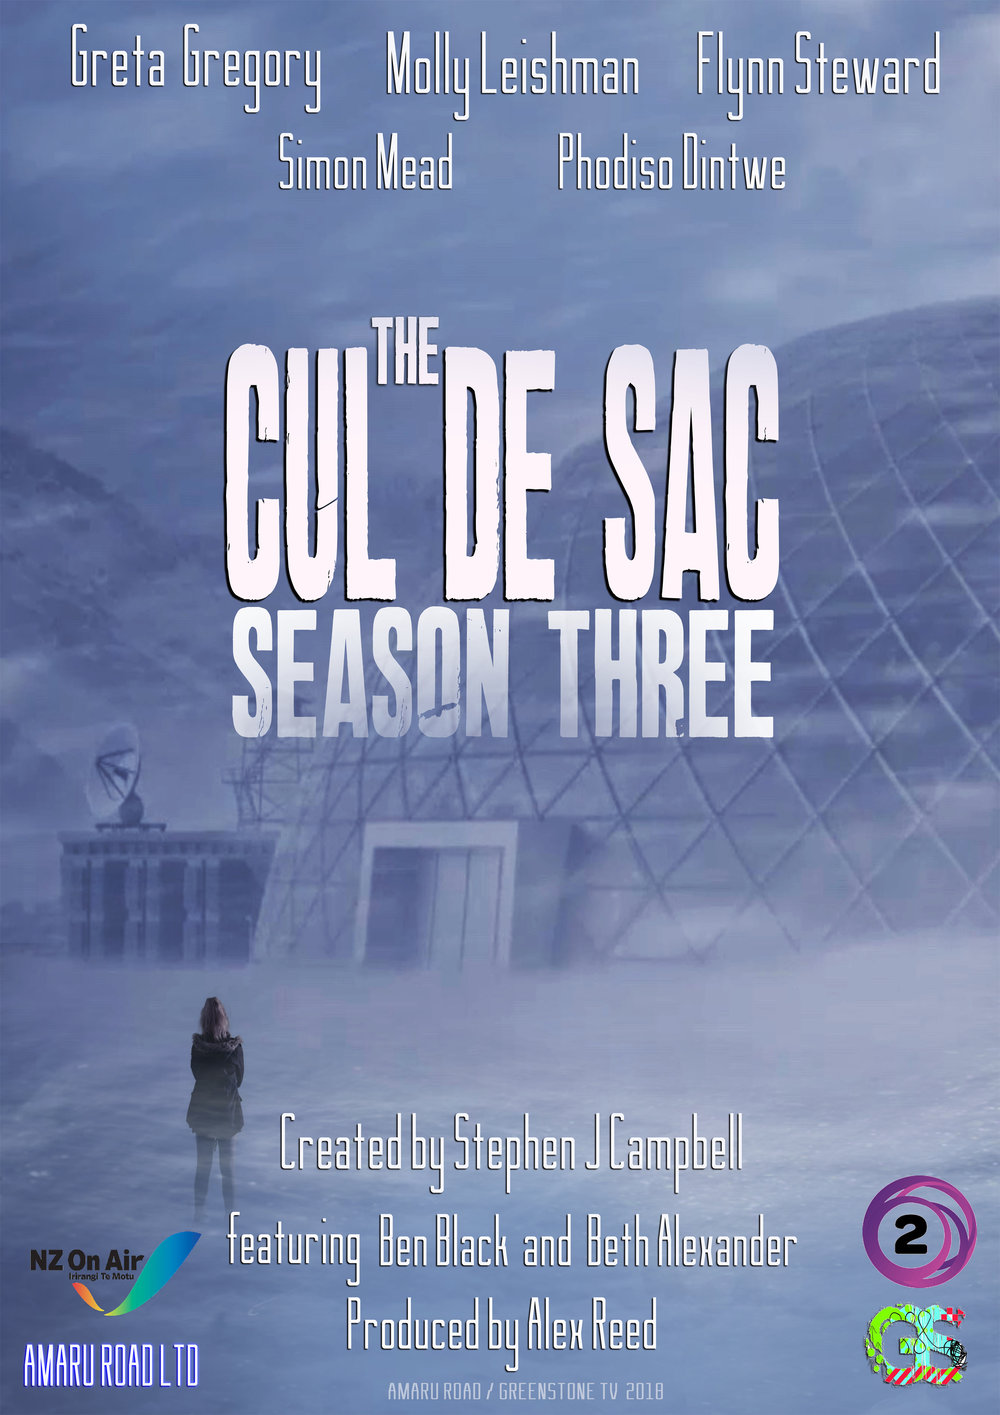 The Cul de Sac: Season Three. (TVNZ)    Rose  strives to create a normal life for her siblings. However as the malevolent forces that control the world continue to grow in strength, she learns there is a personal price to pay if she is to save her family.